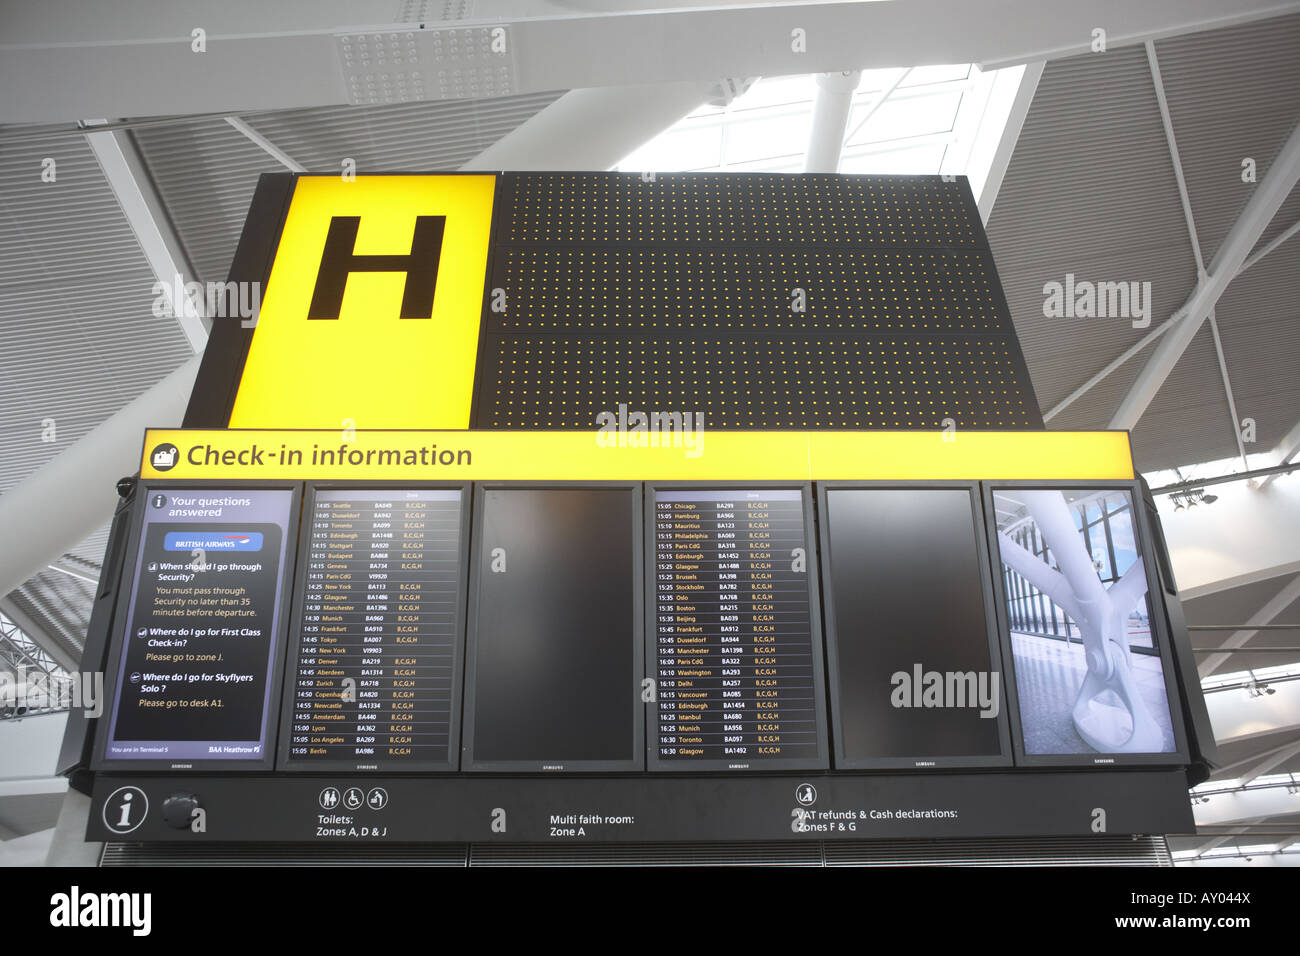 Landside flight departures information boards in newly-opened London Heathrow Airport's Terminal 5 building - Stock Image